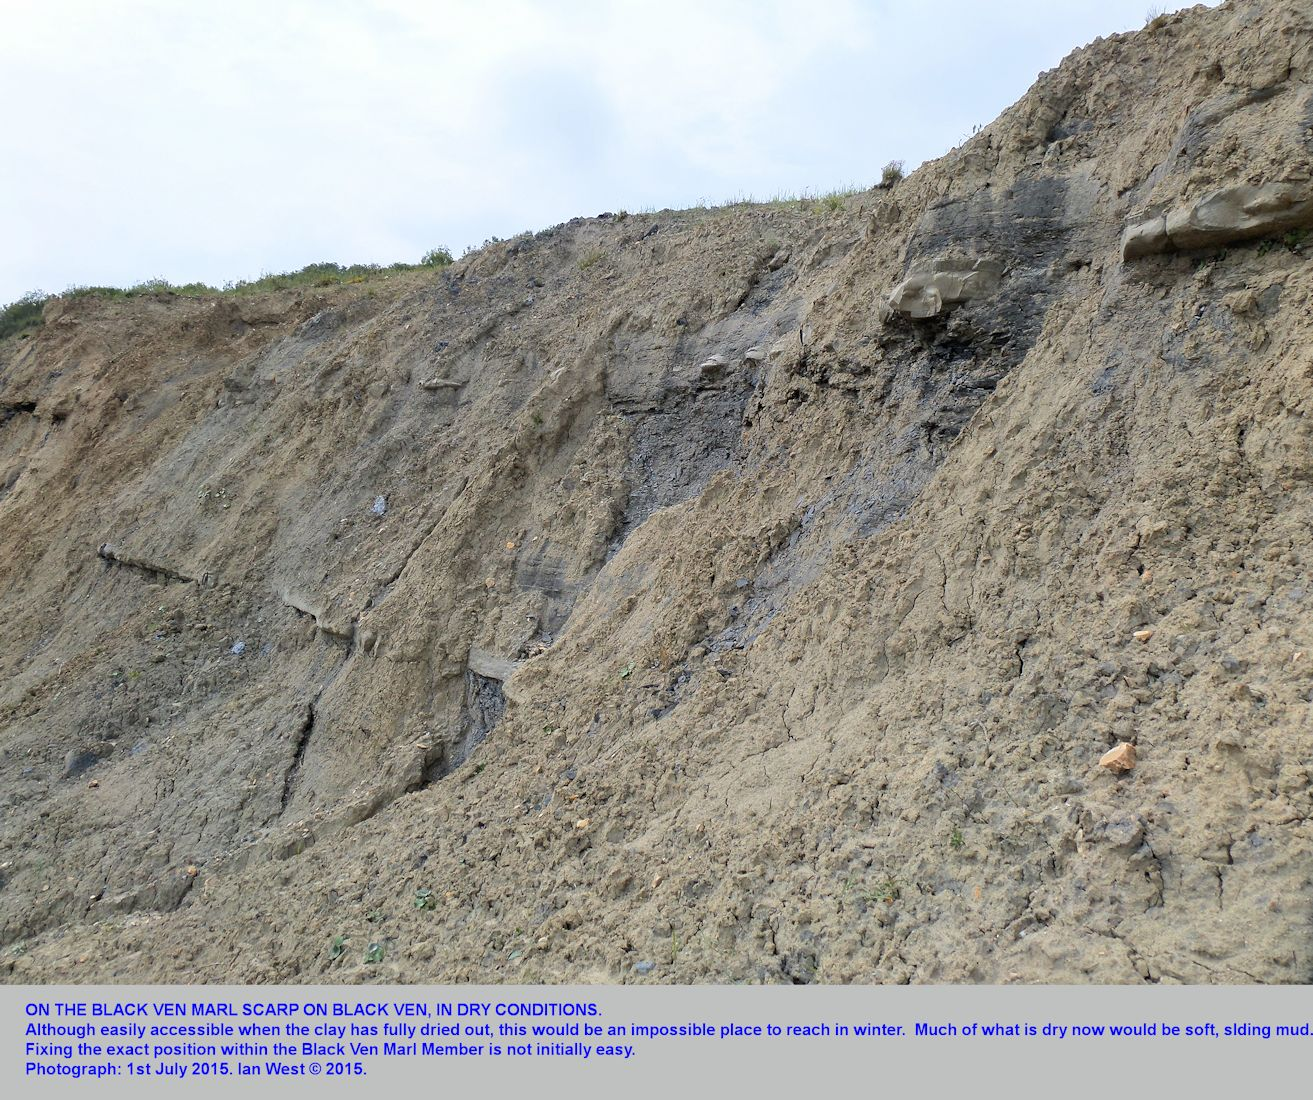 The Black Ven Marl Scarp on central Black Ven, east of Lyme Regis, Dorset, a general view with nodules and a limestone bed, 1st July 2015